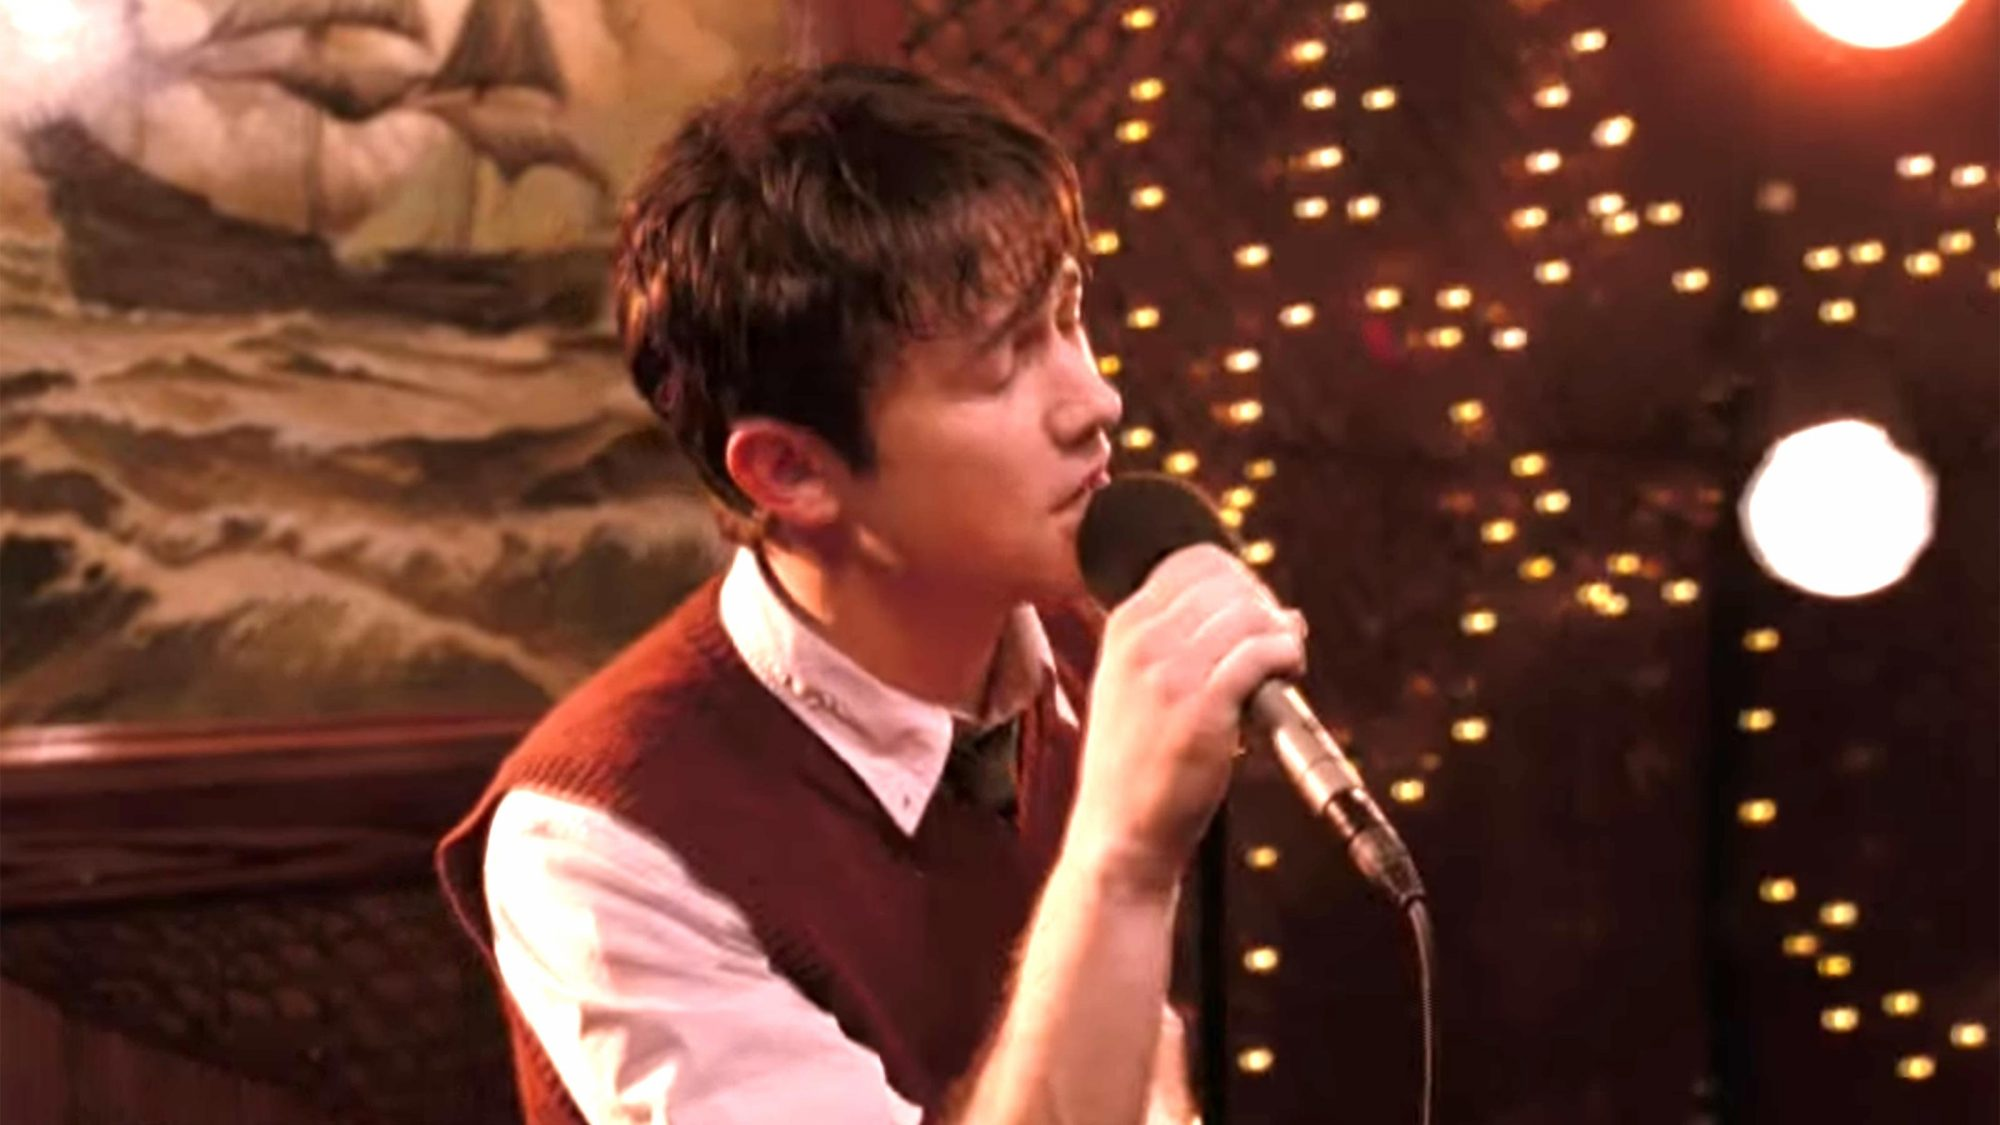 500 Days of Summer (Joseph Gordon-Levitt)  (screen grab)